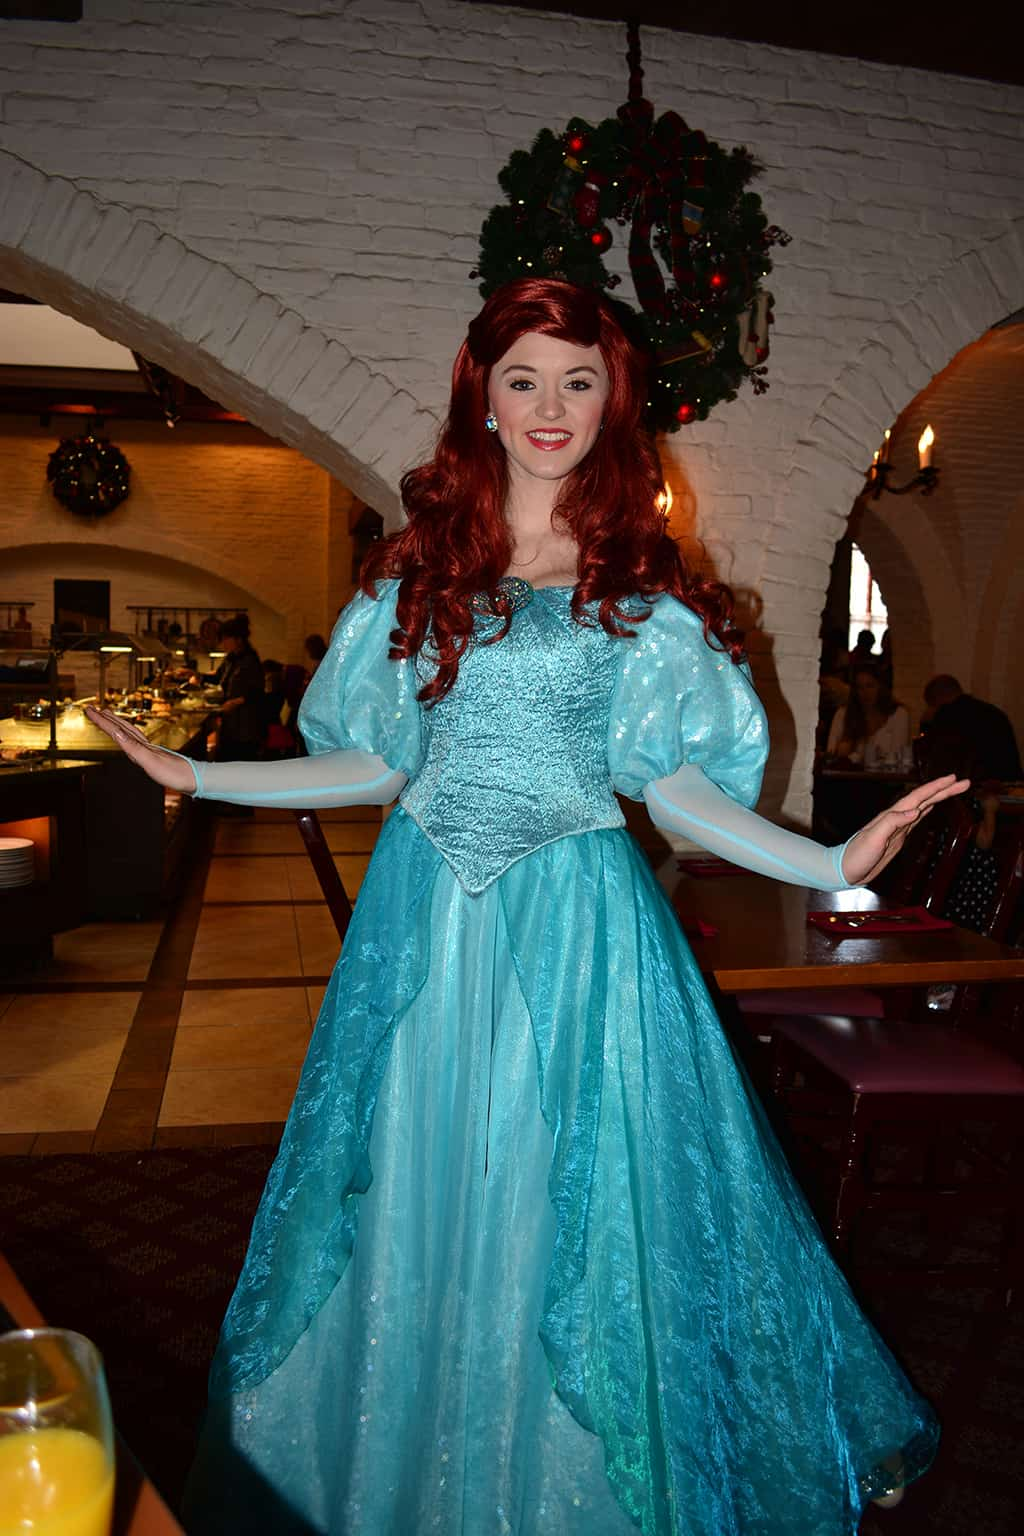 Belle's Christmas Dress